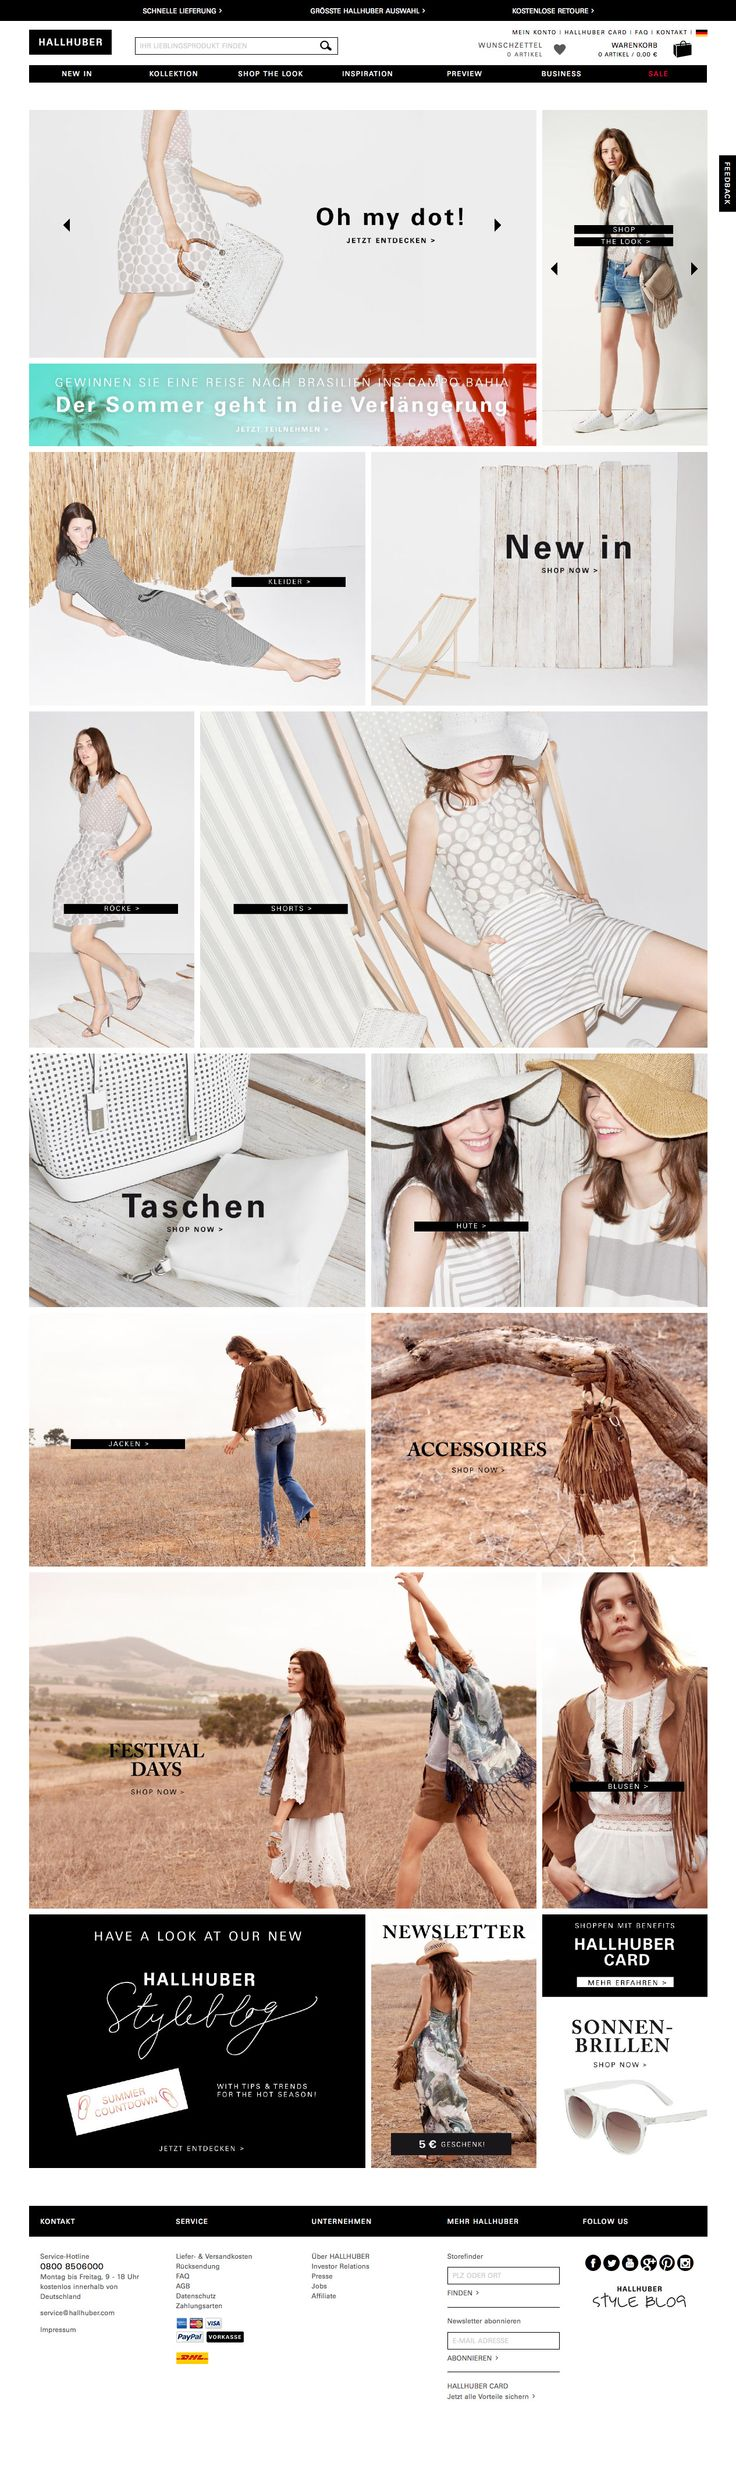 Based in Germany, trend-savvy women's fashion brand HALLHUBER operates over 200 stores and five online shops across seven countries including Germany, Austria, Switzerland, UK, France, The Netherlands, and Belgium